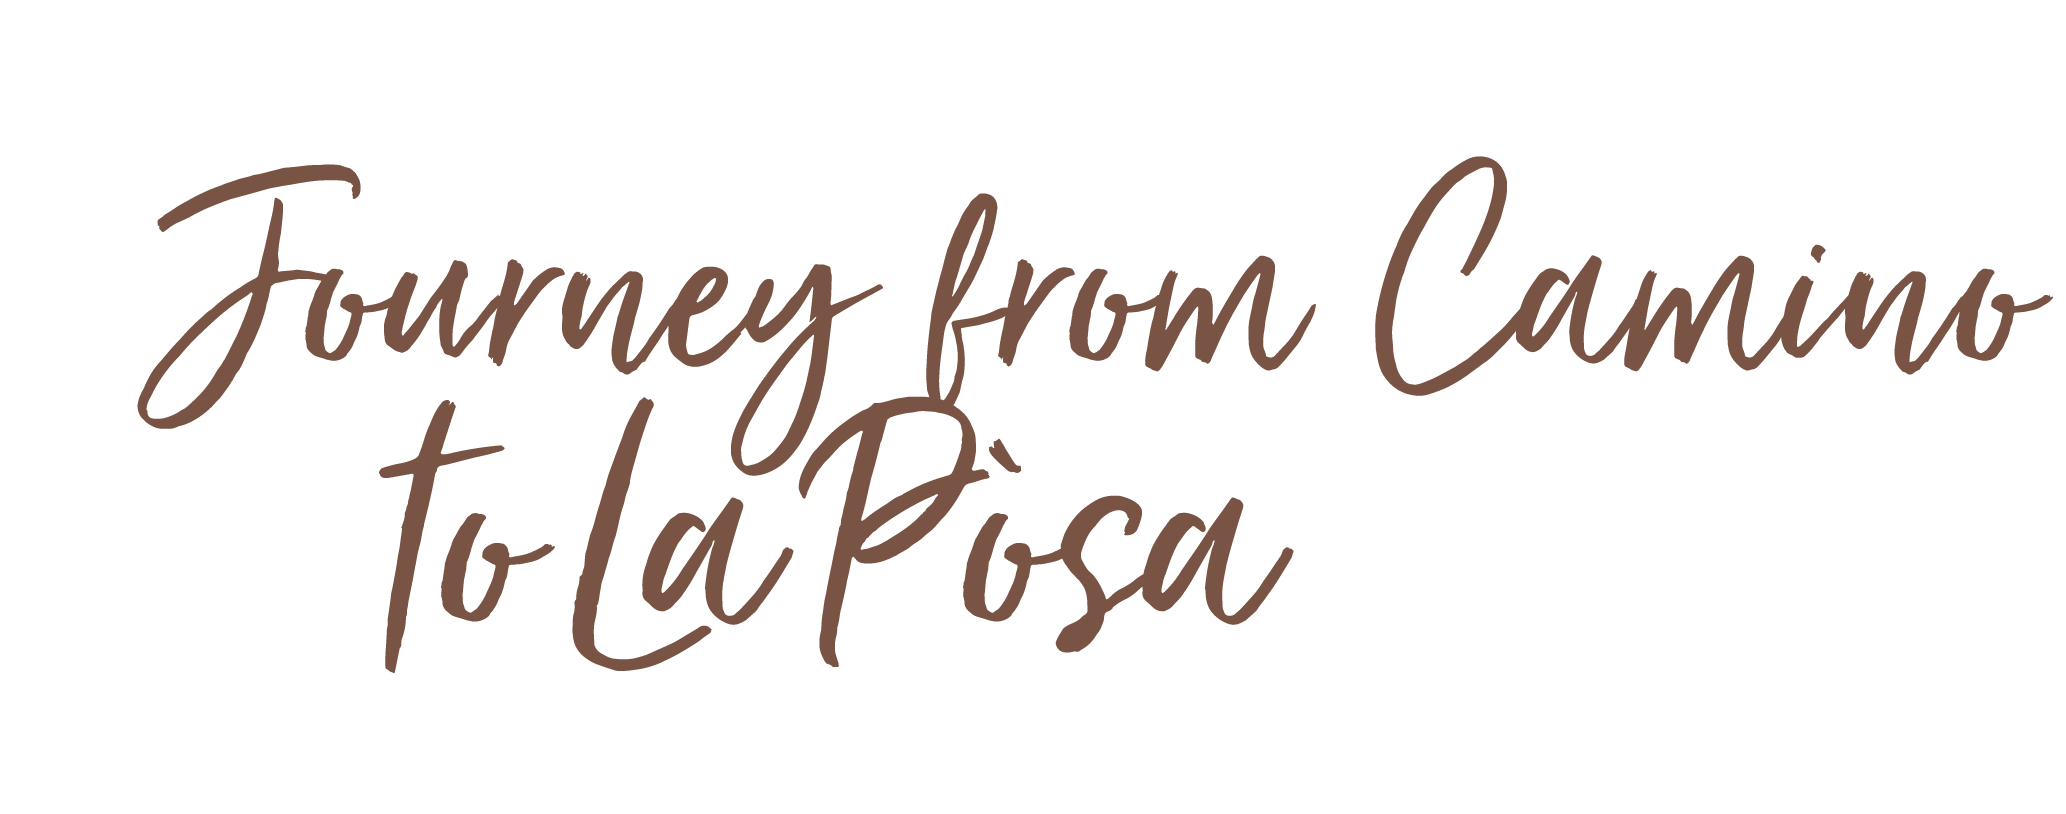 JOURNEY FROM CAMINO RESTAURANT TO LA POSA